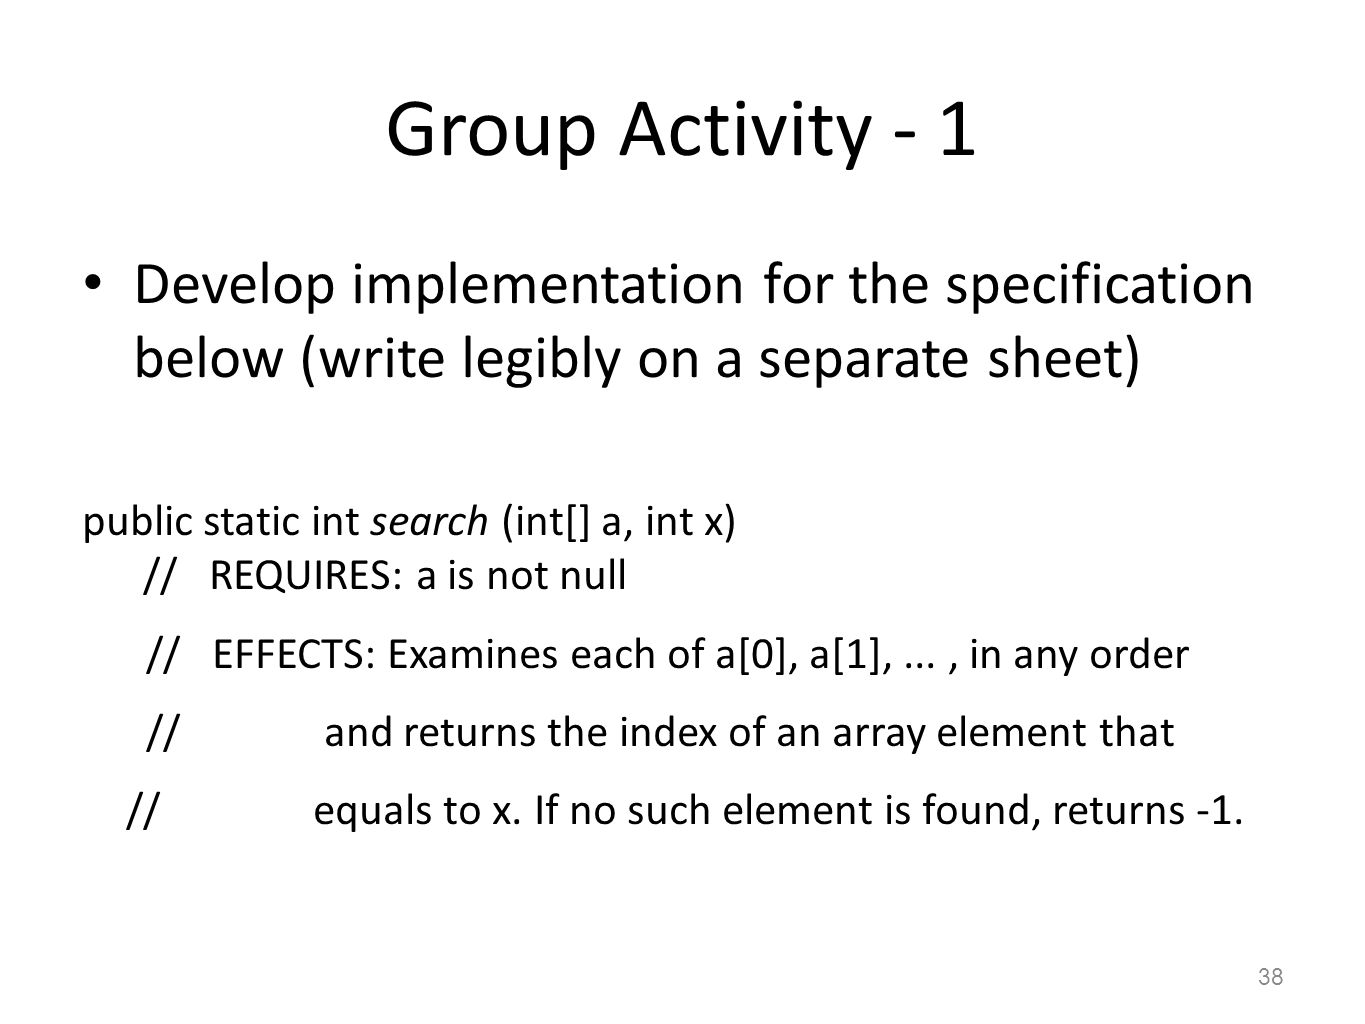 Group Activity - 1 Develop implementation for the specification below (write legibly on a separate sheet) public static int search (int[] a, int x) //